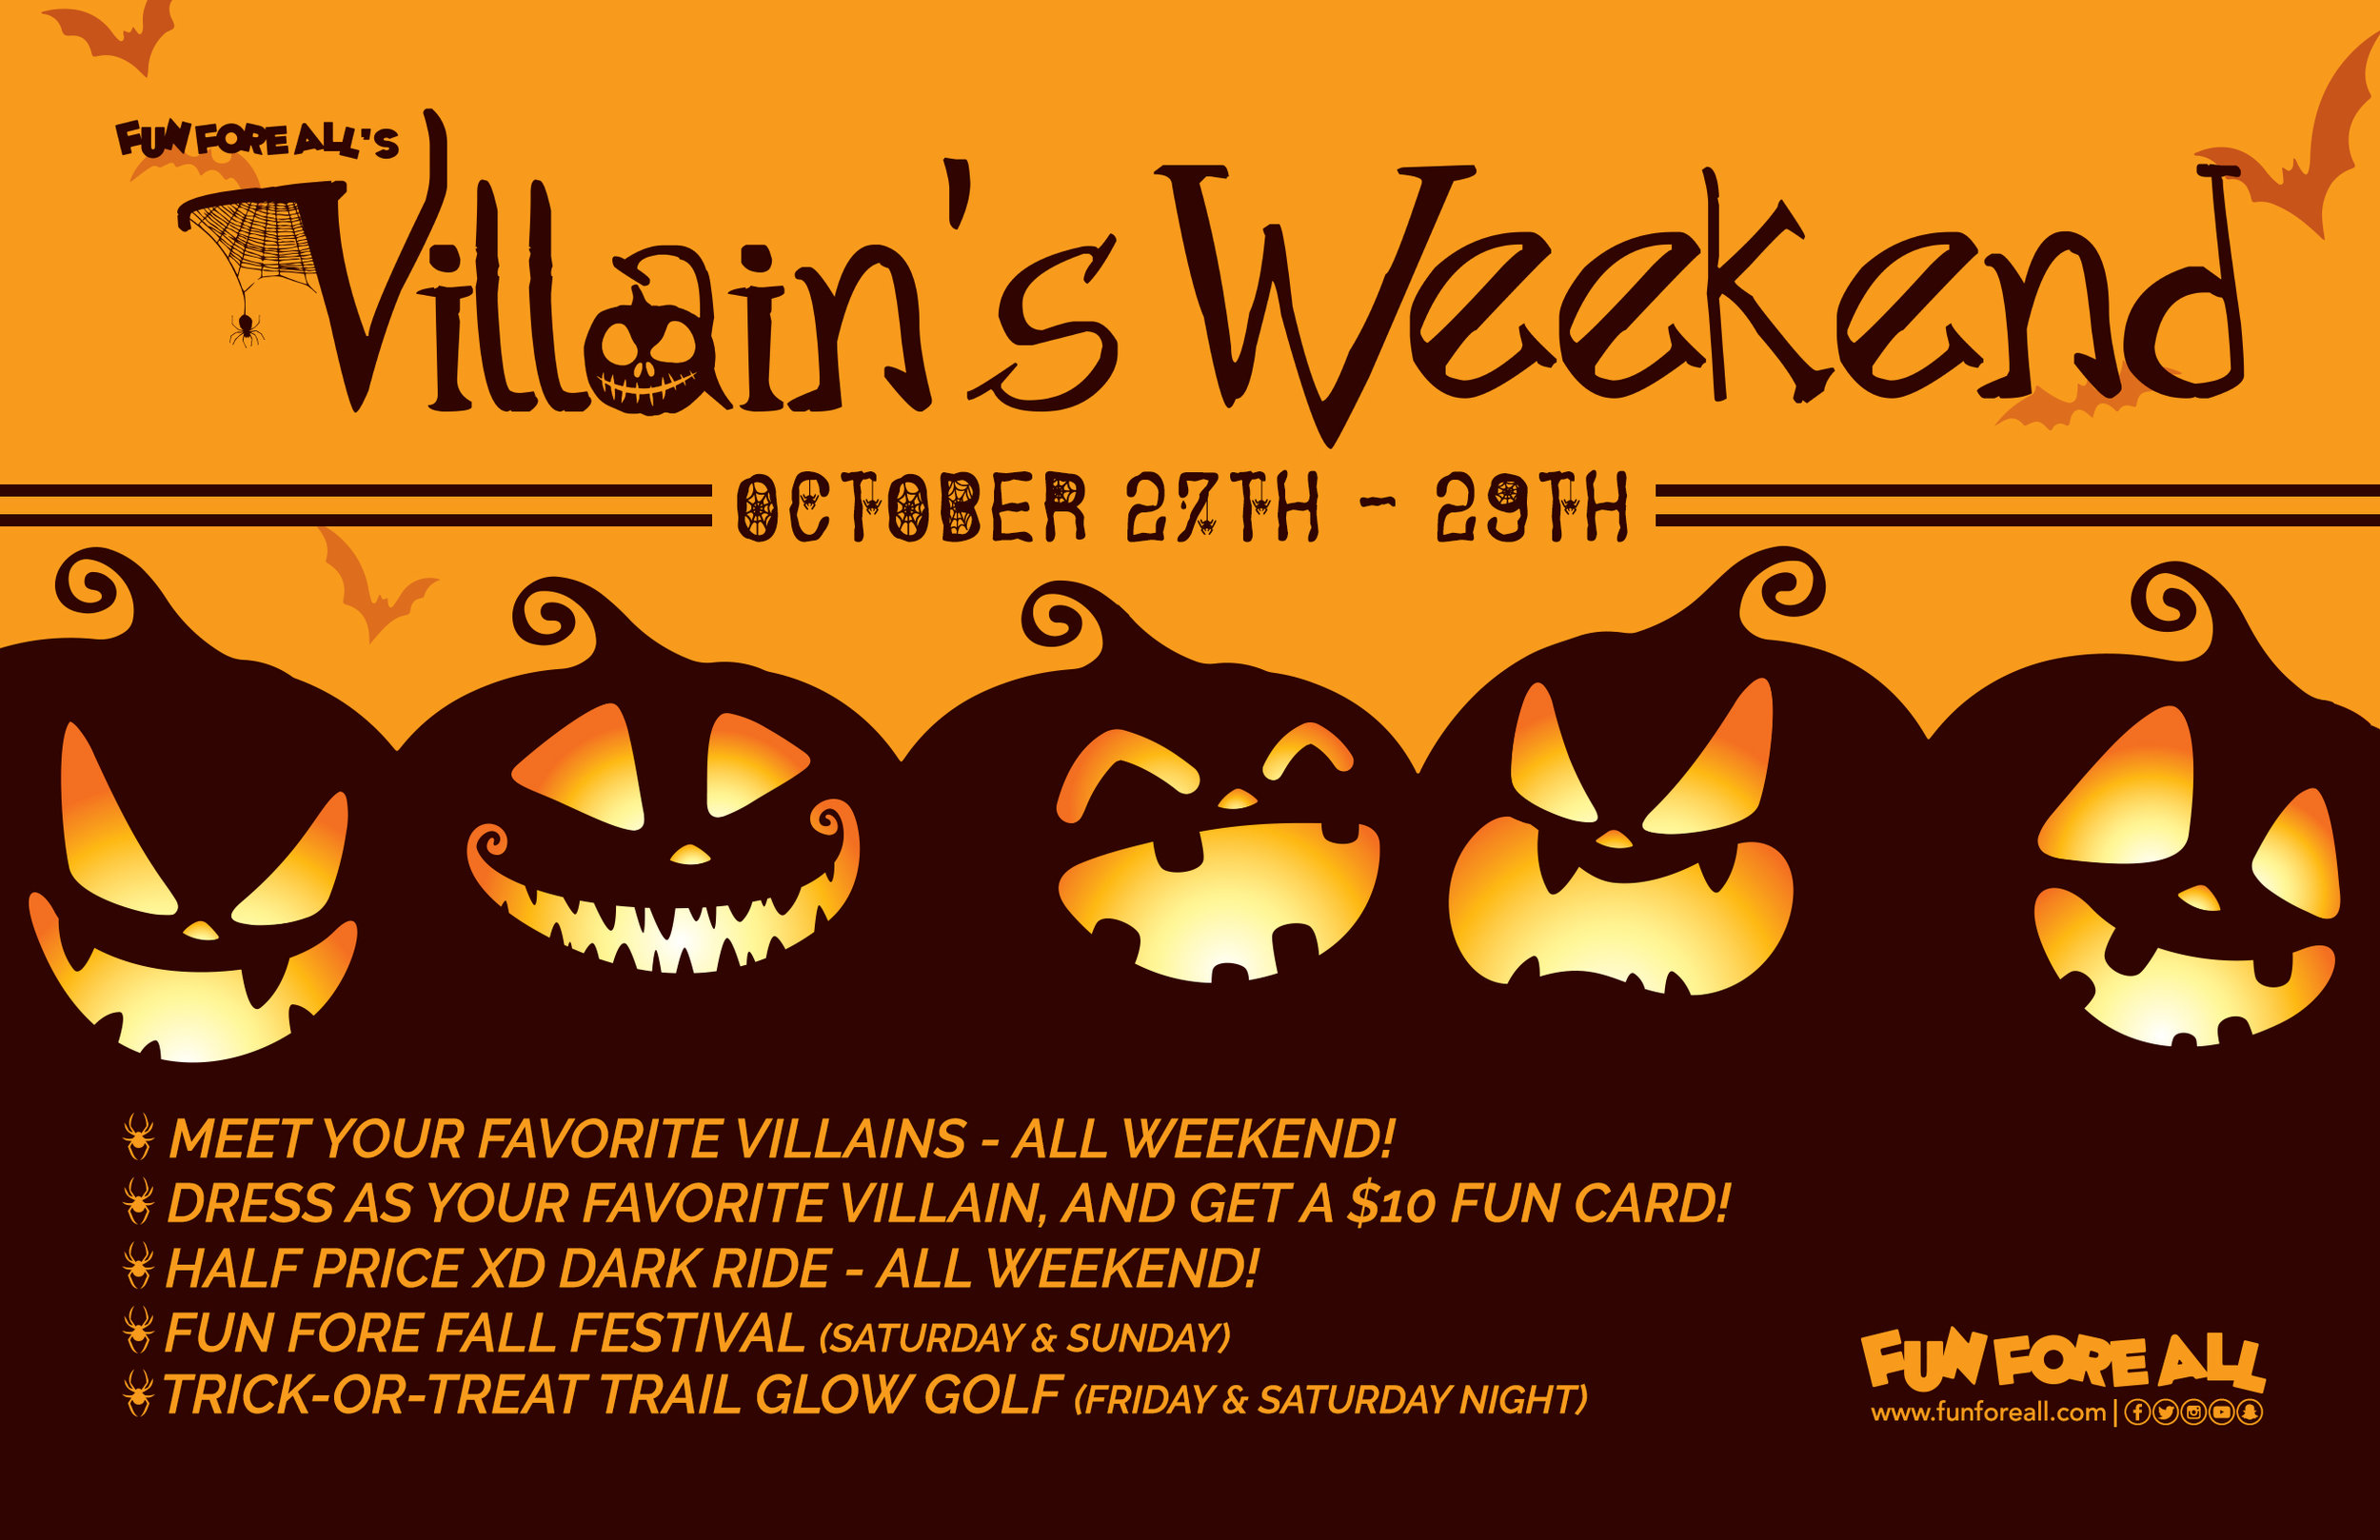 Villains Weekend Flyer Print 3.jpg